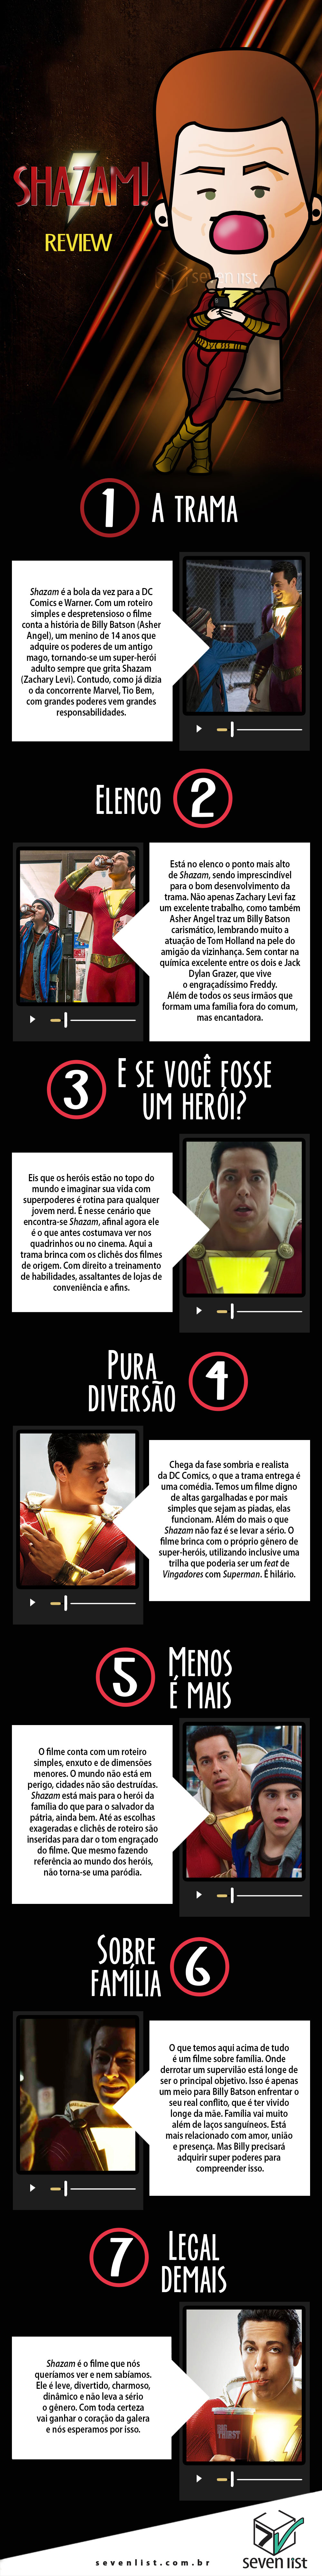 SHAZAM - CINEMA - REVIEW - SEVEN LIST